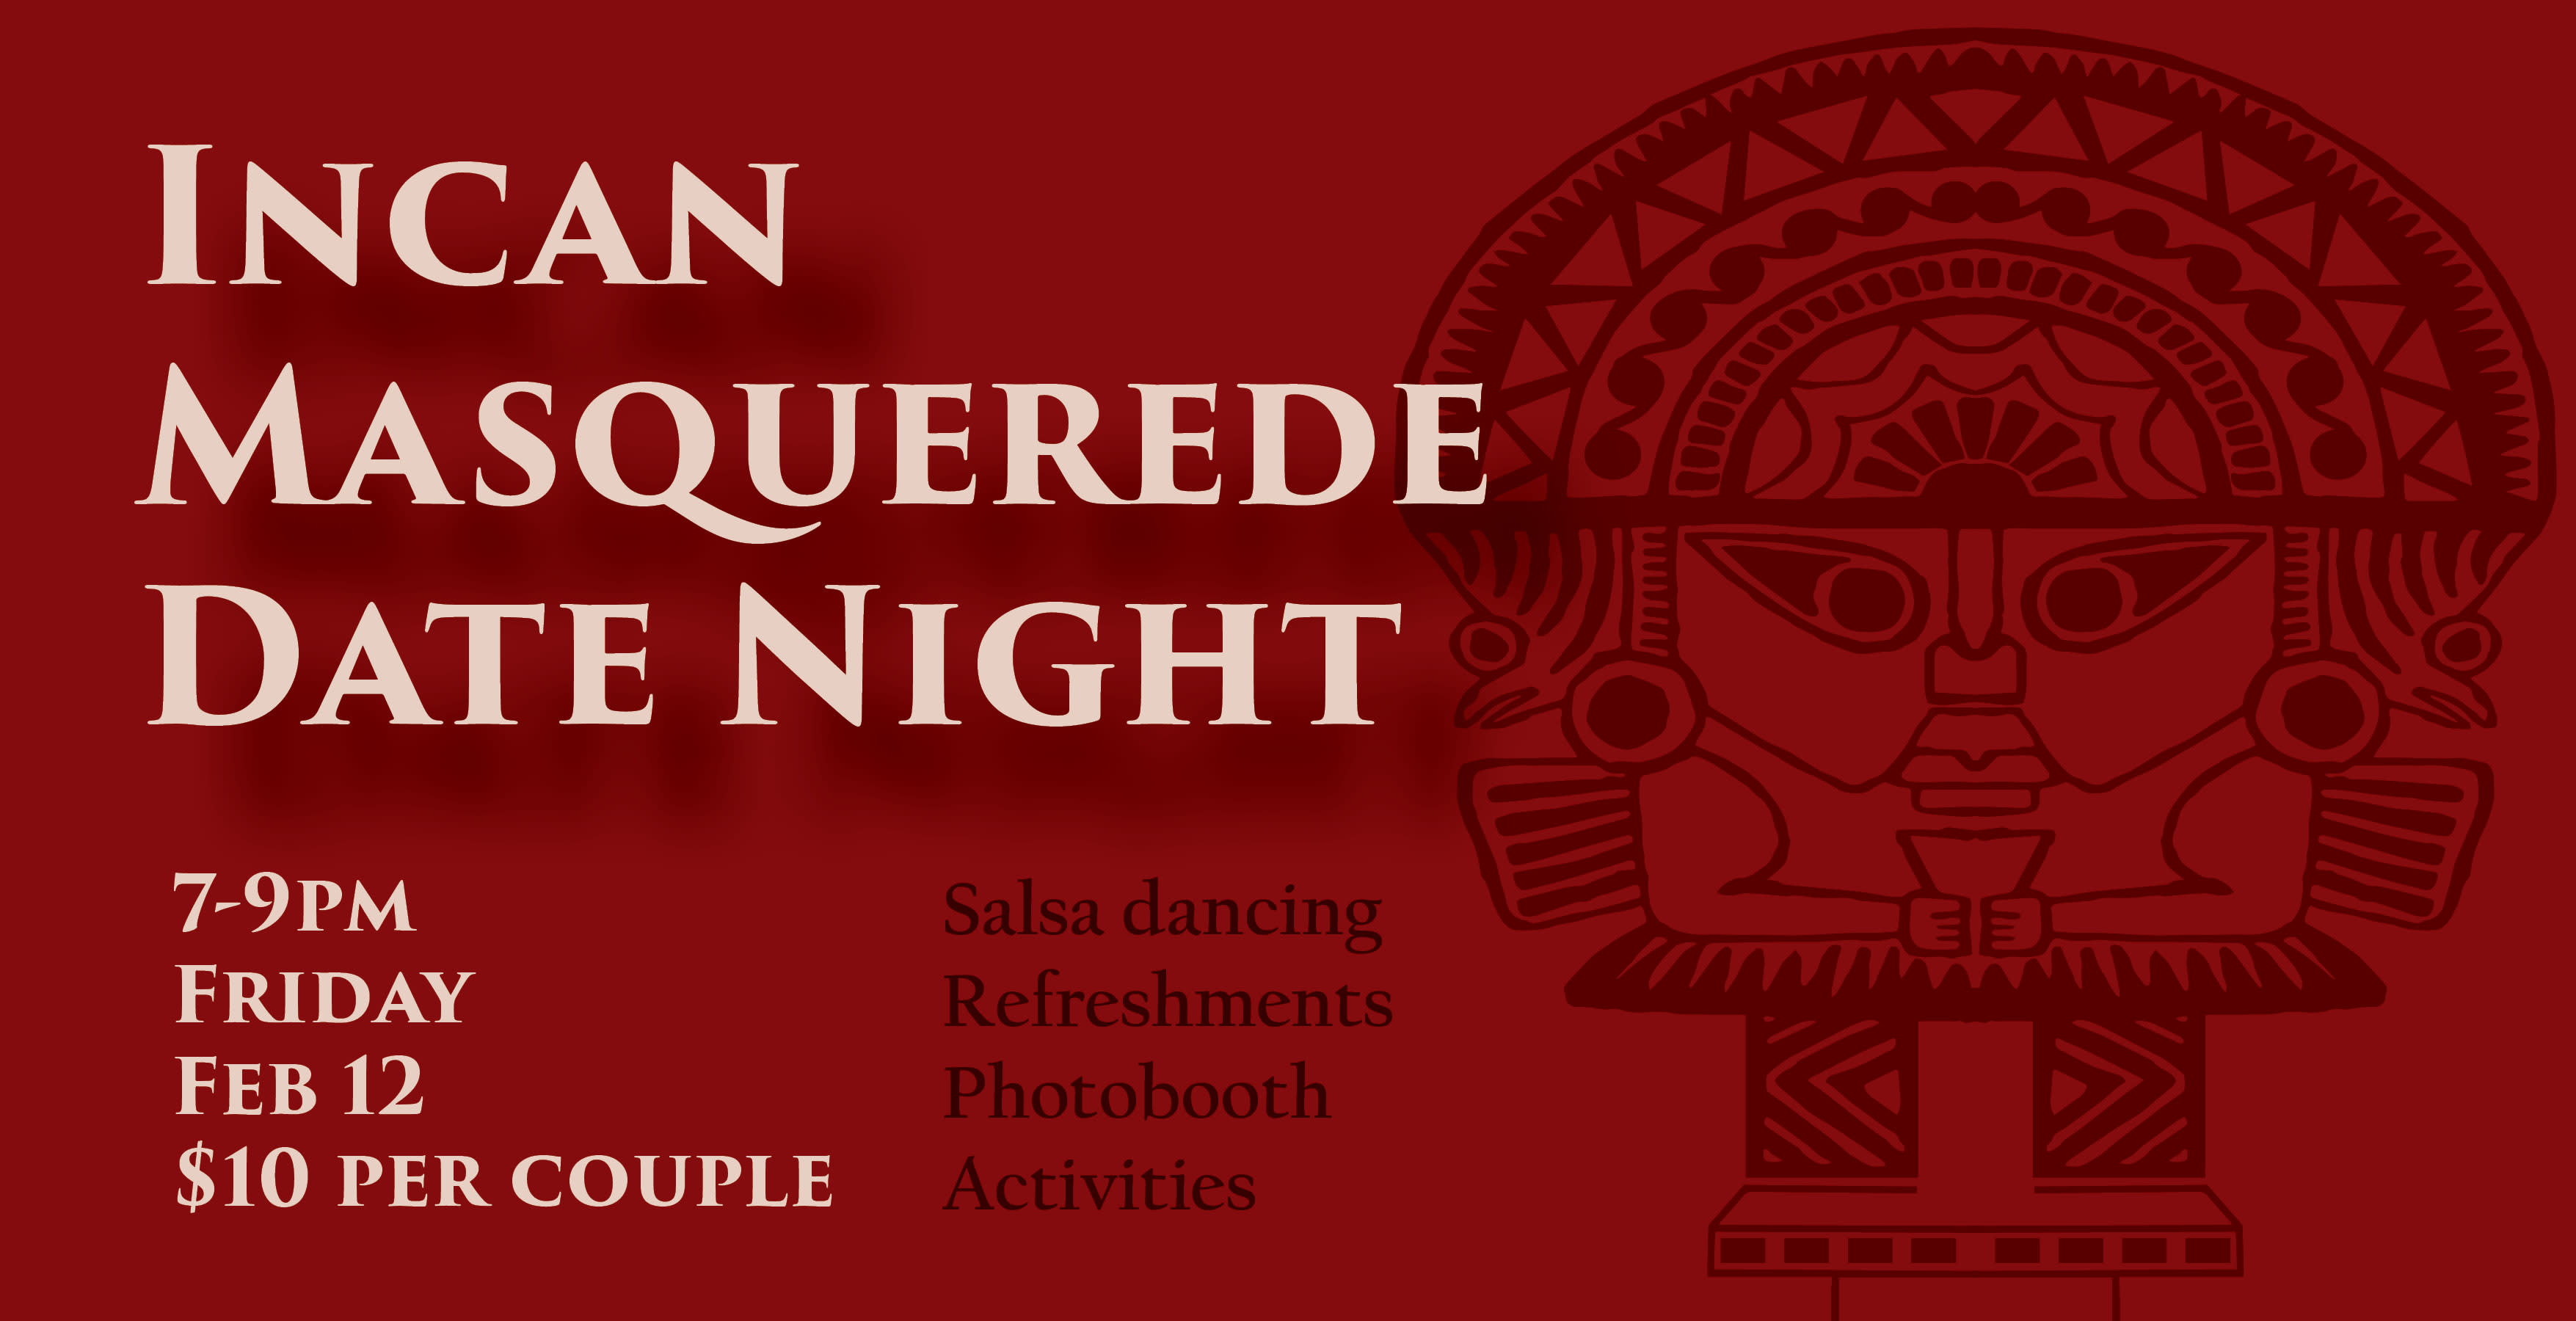 Flyer for the Incan Masquerade